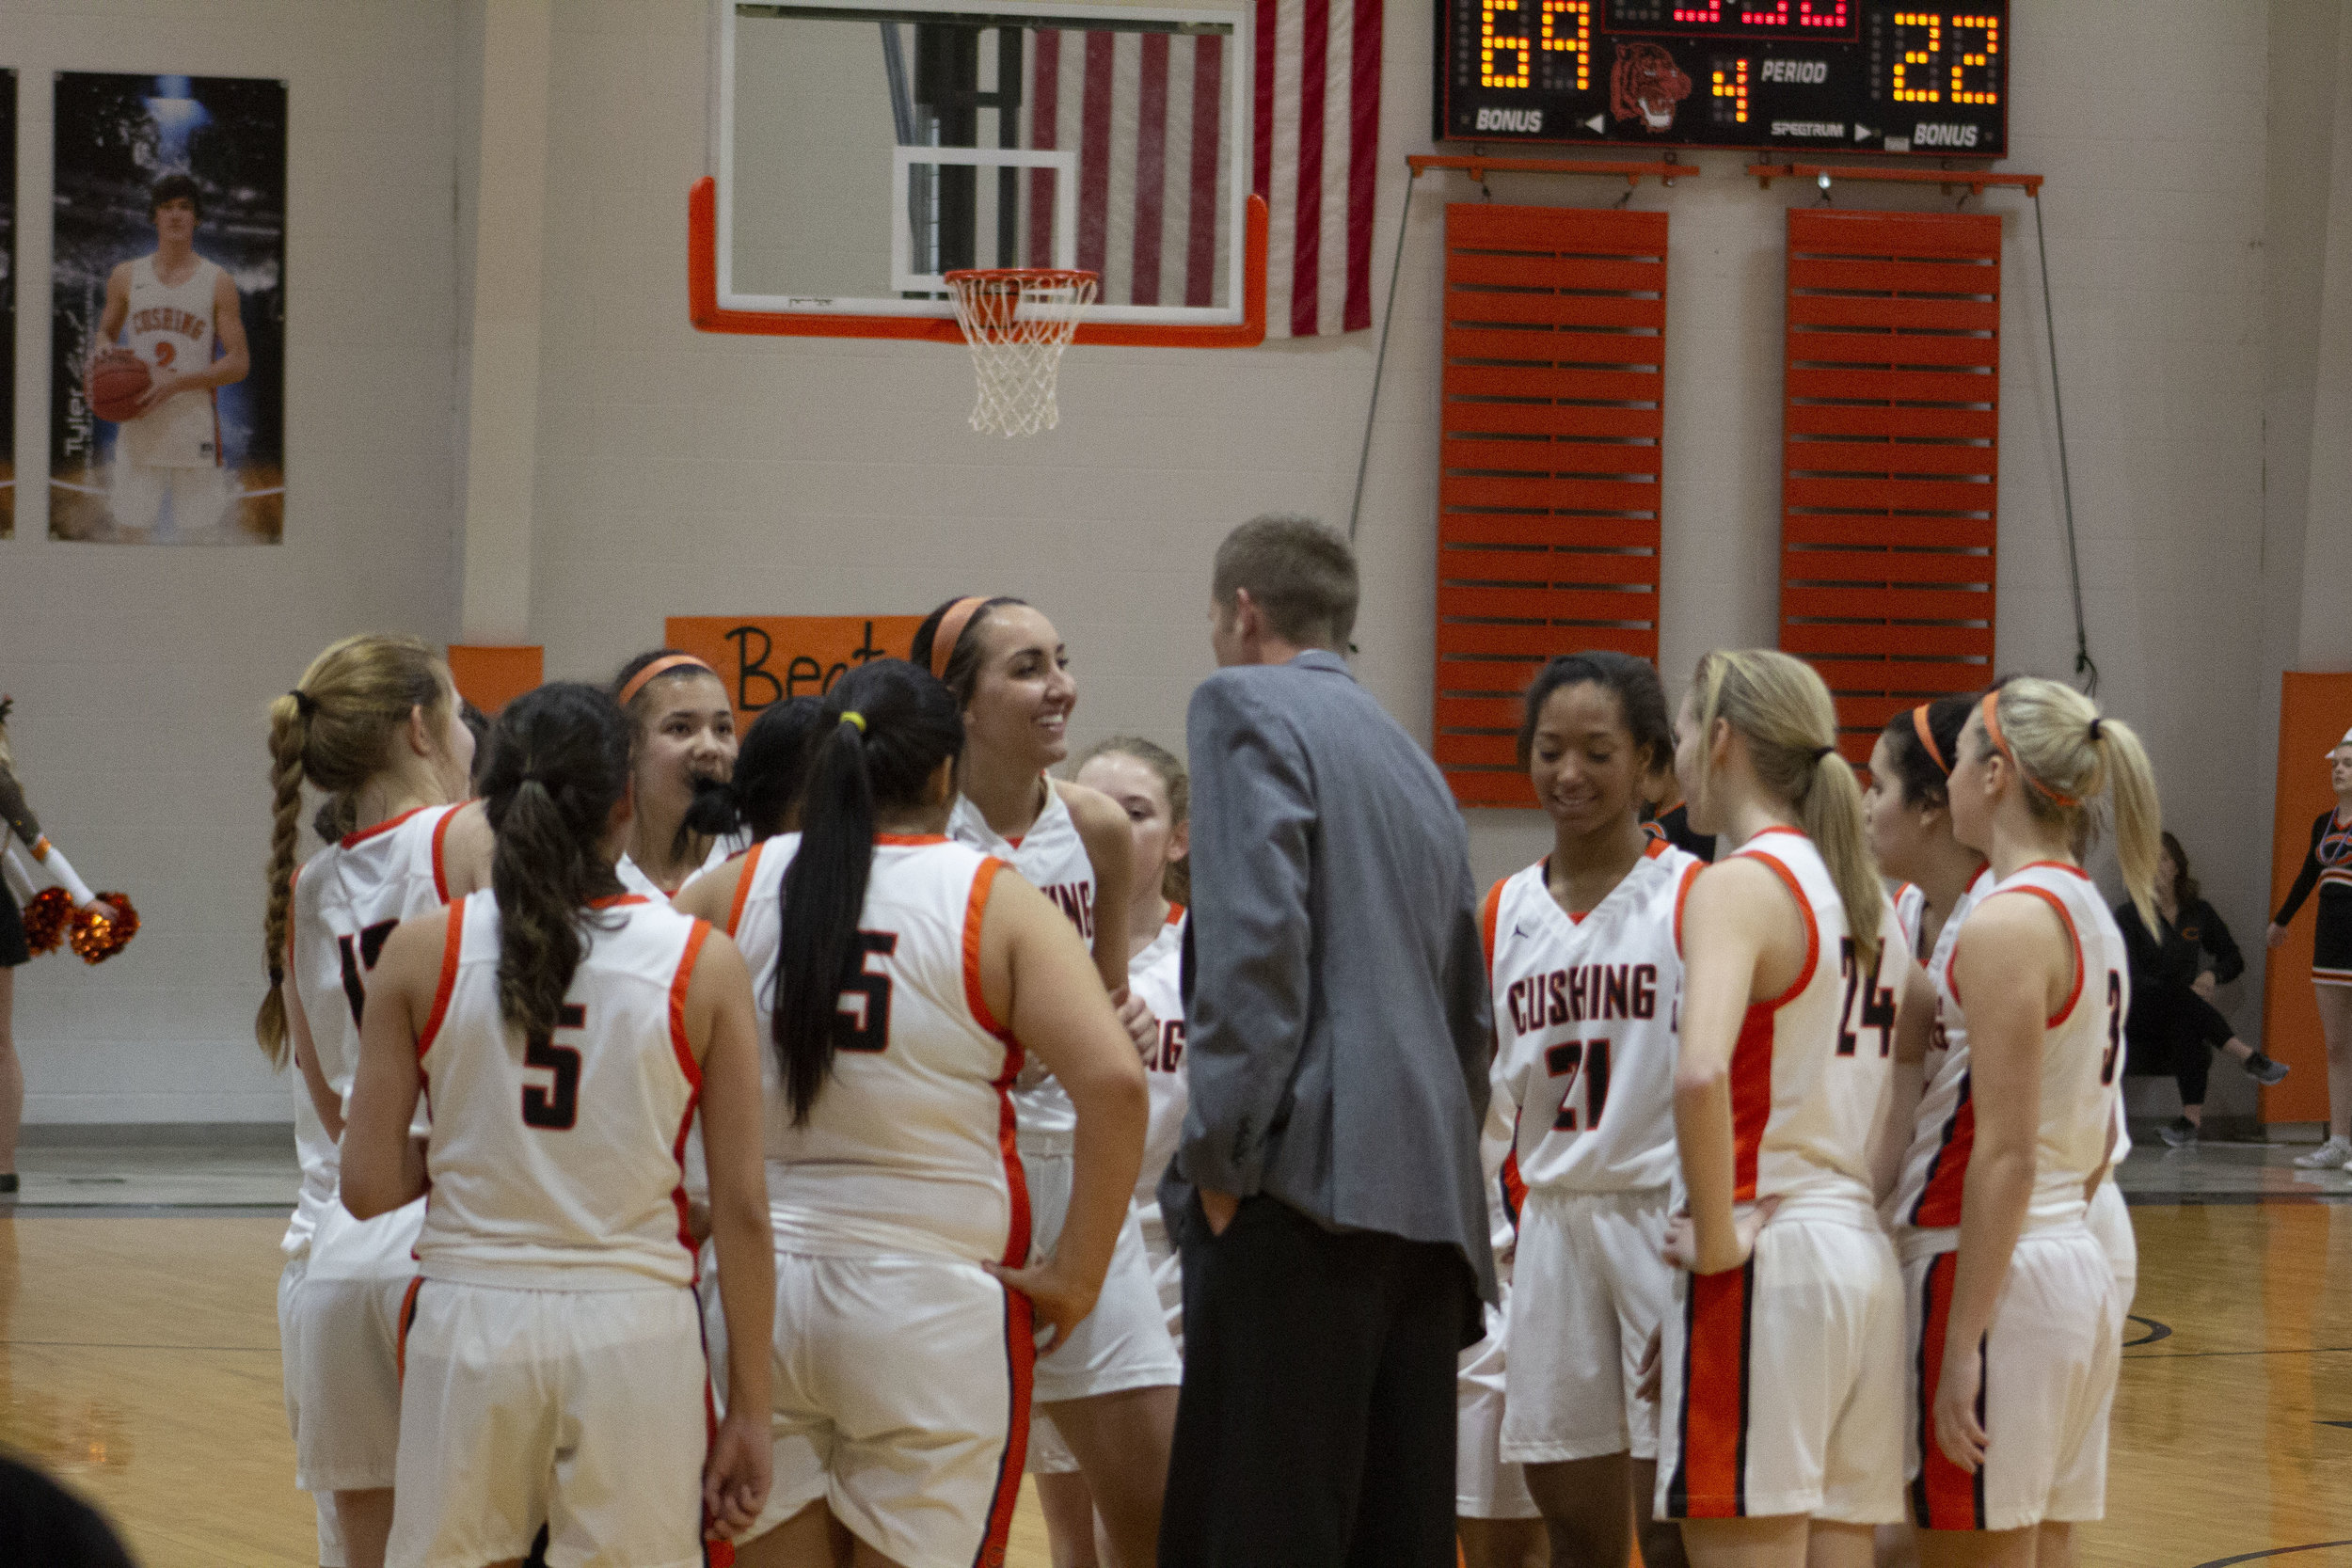 Lady TiGERS receiving instruction from Coach Brian Busby - RDMGtv